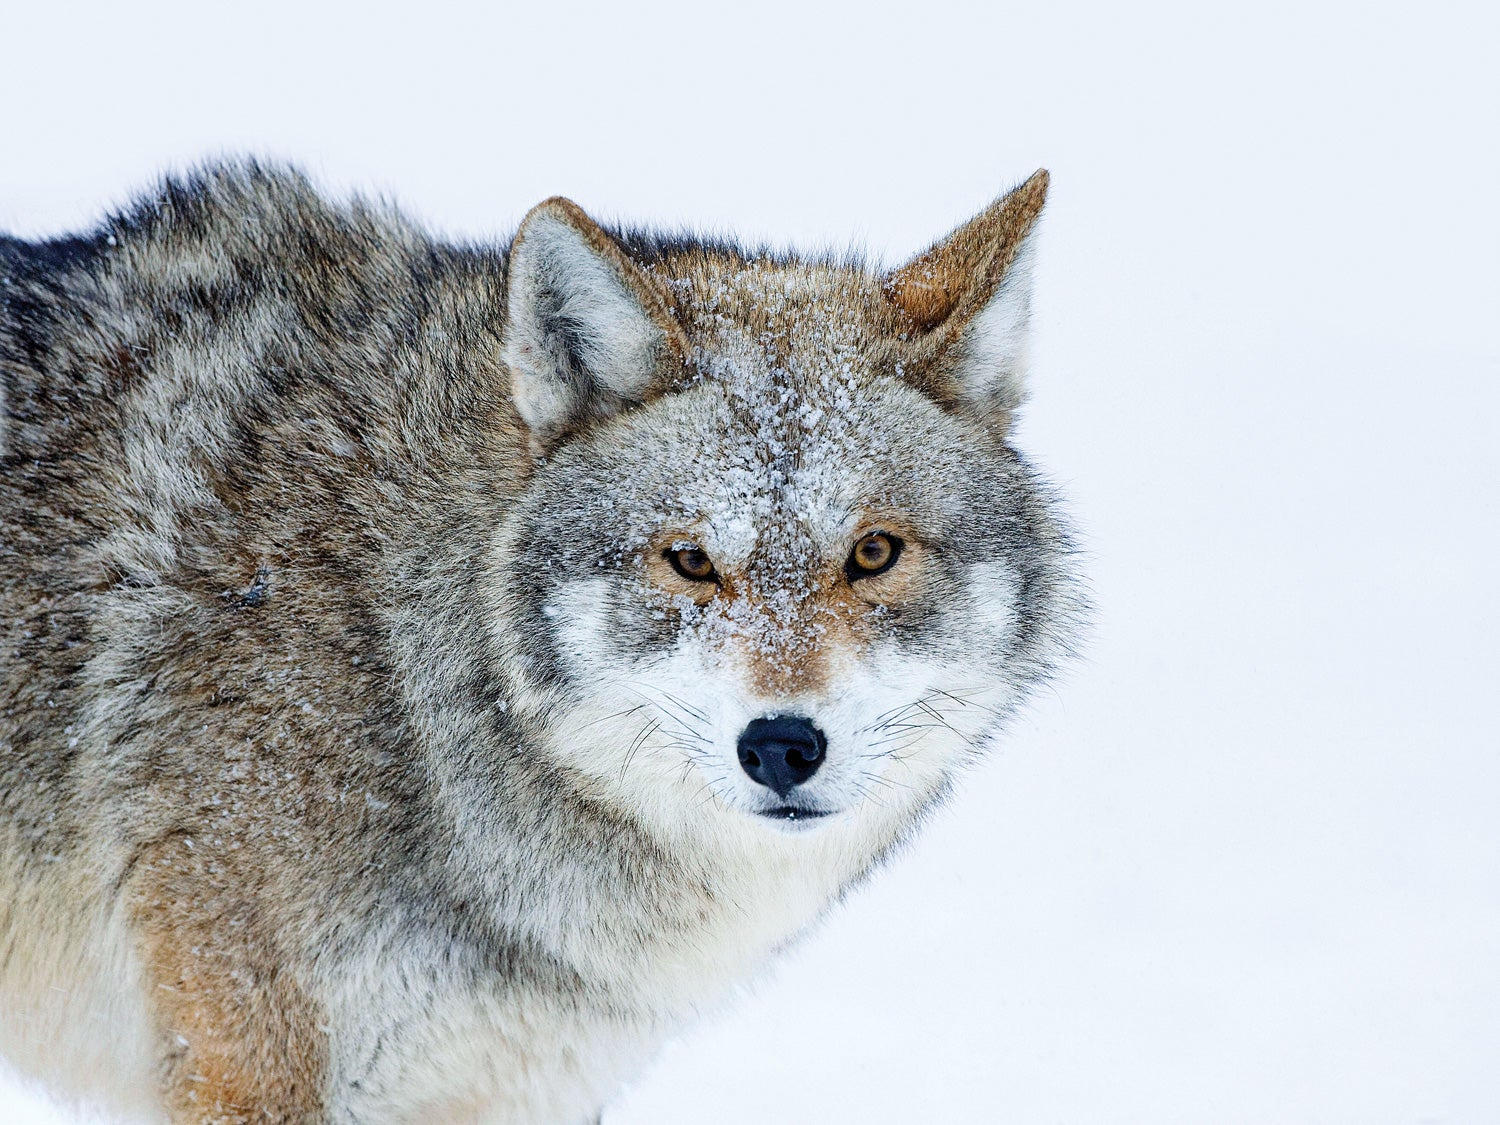 coyote conservation